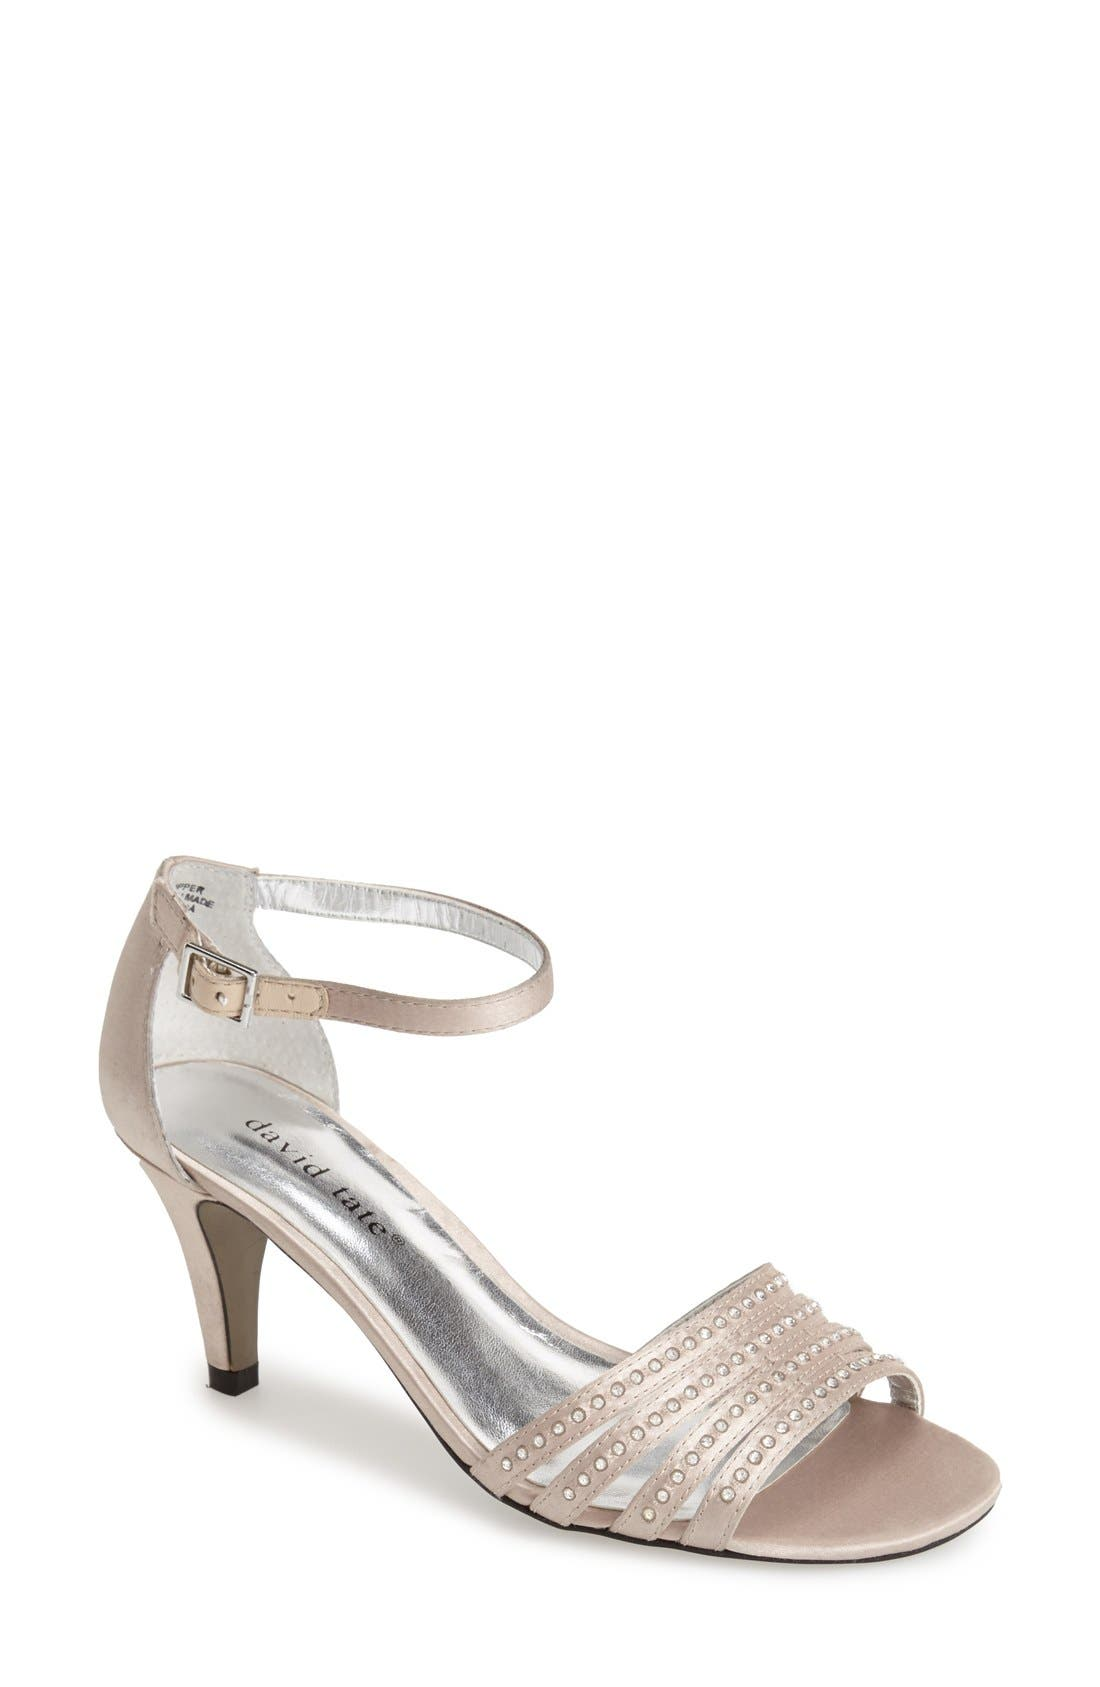 'Terra' Ankle Strap Sandal,                         Main,                         color, CHAMPAGNE SATIN